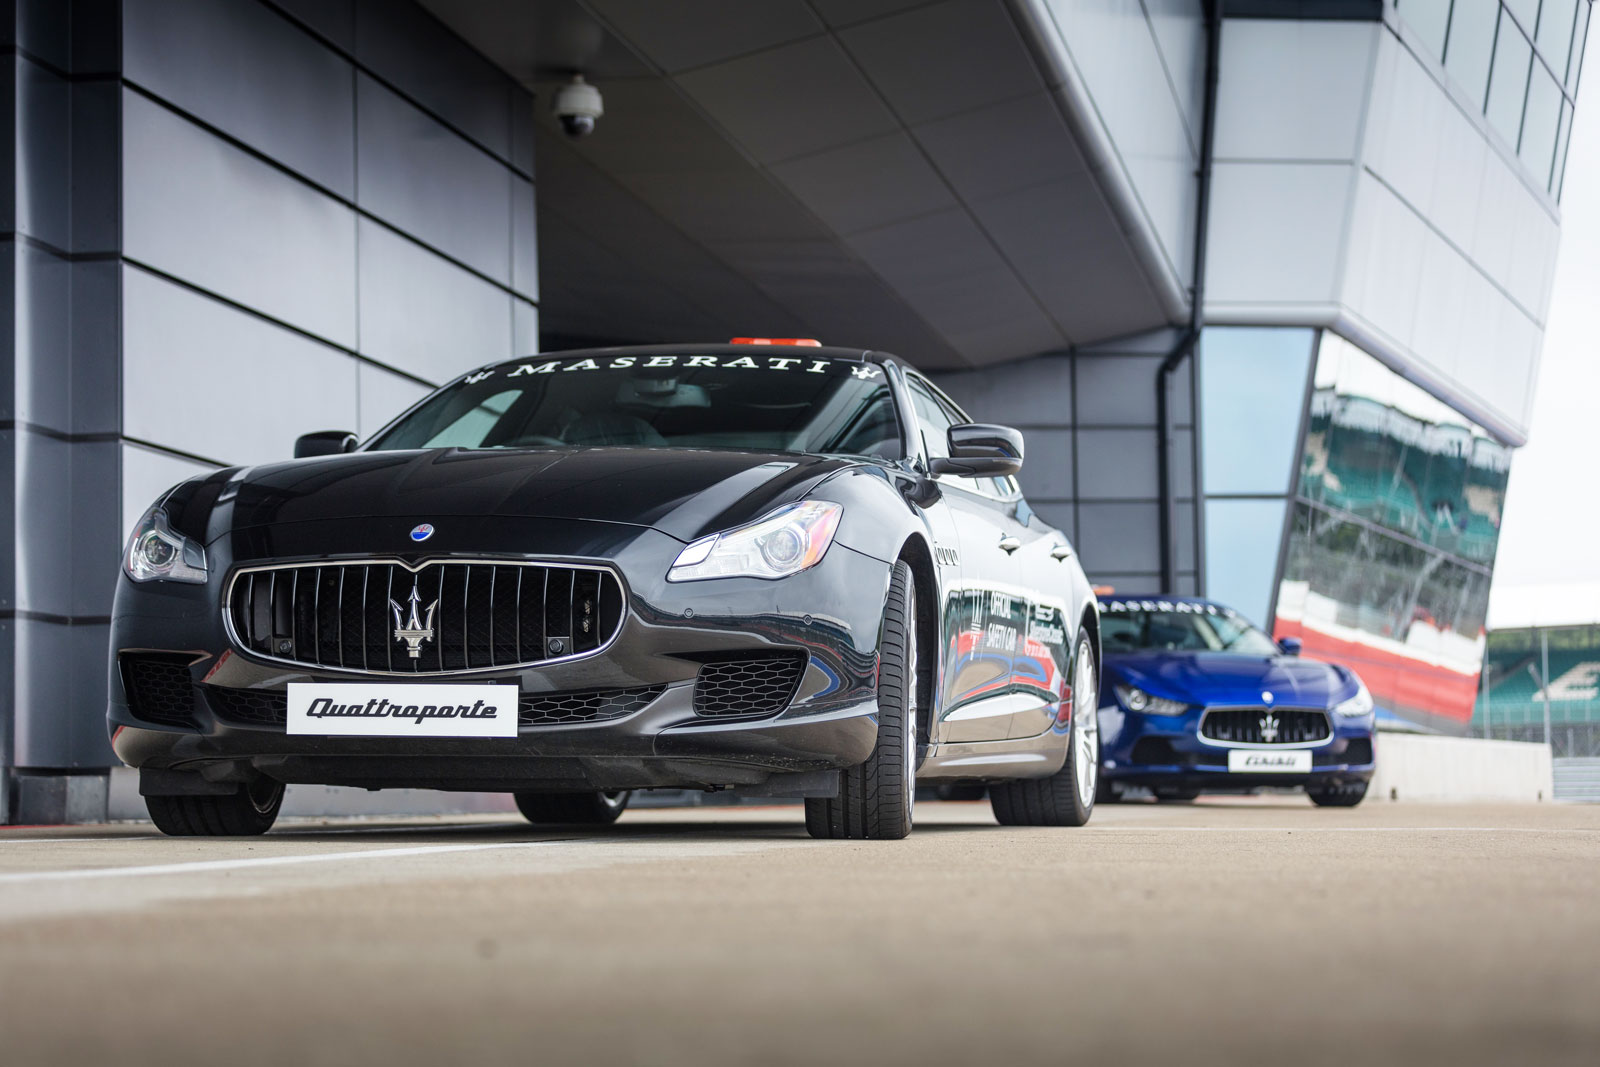 Maserati Official Pace Car at Silverstone